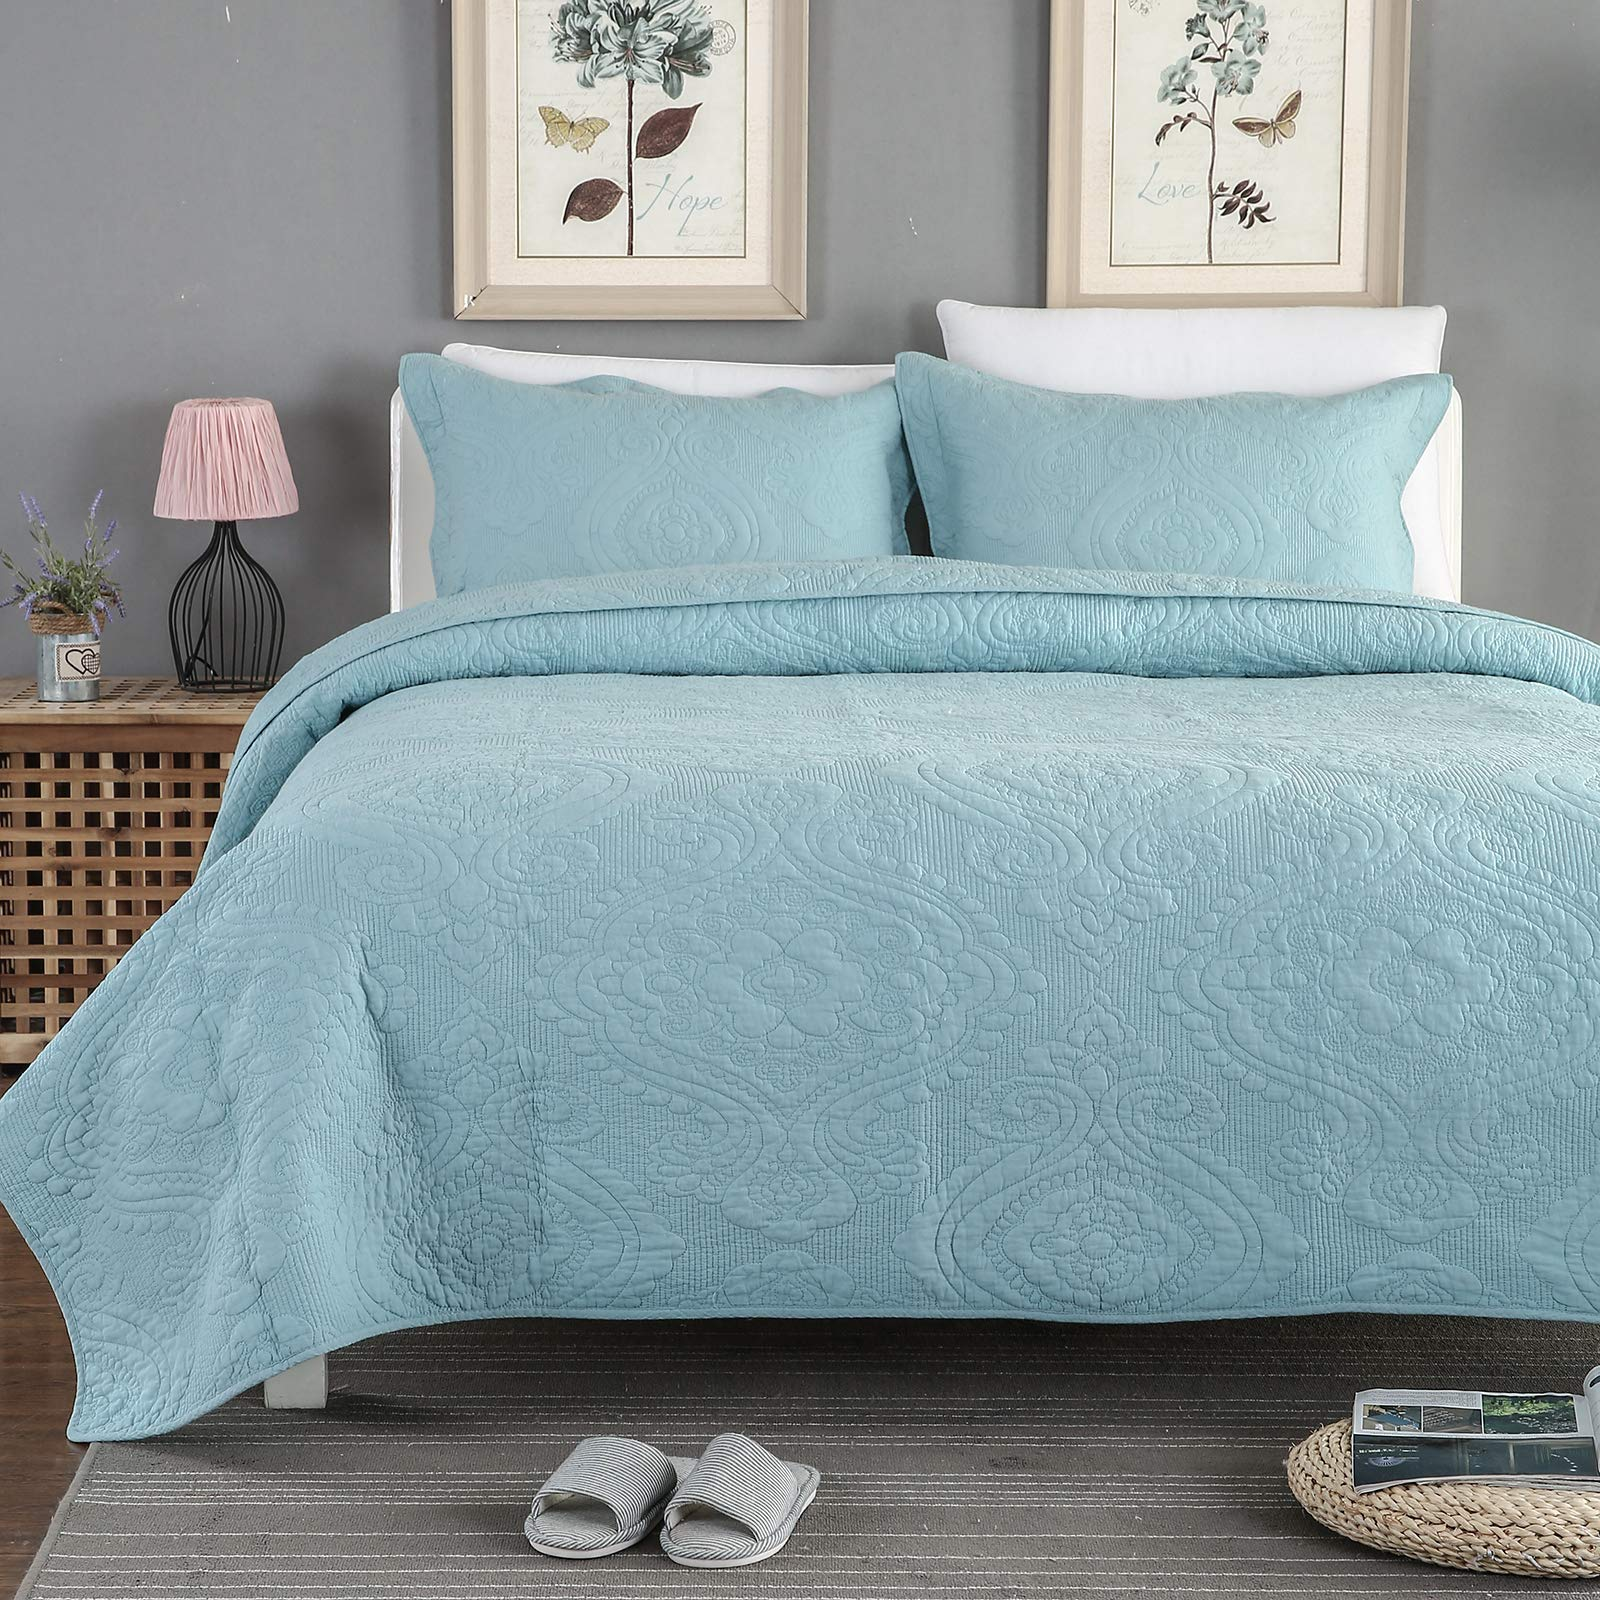 Brandream Quilt Set Queen Size Cotton Bedspread Coverlet Set Luxury Quilted Comforter Sets Light Blue Damask Embroidery